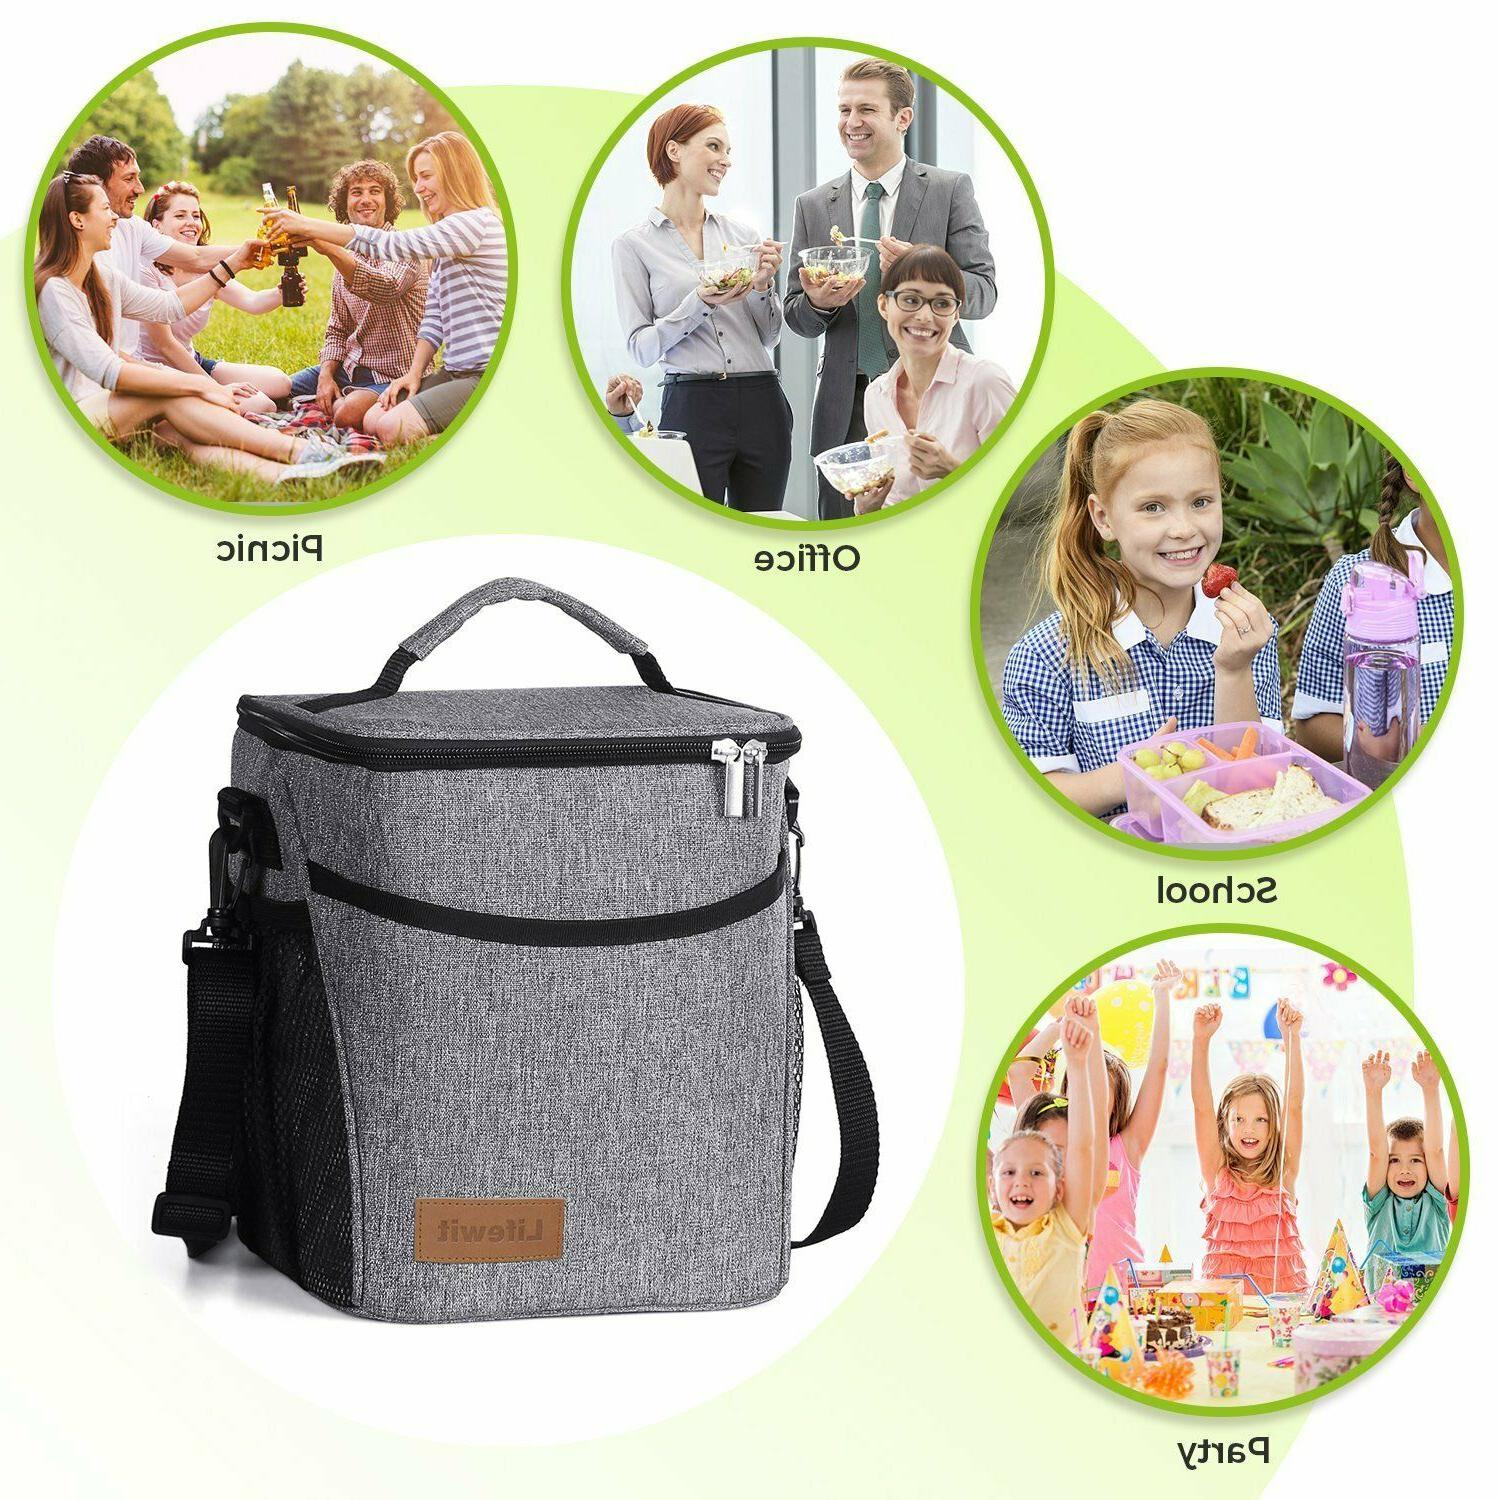 Lifewit 9L Large Insulated Lunch Bag Waterproof Cooler